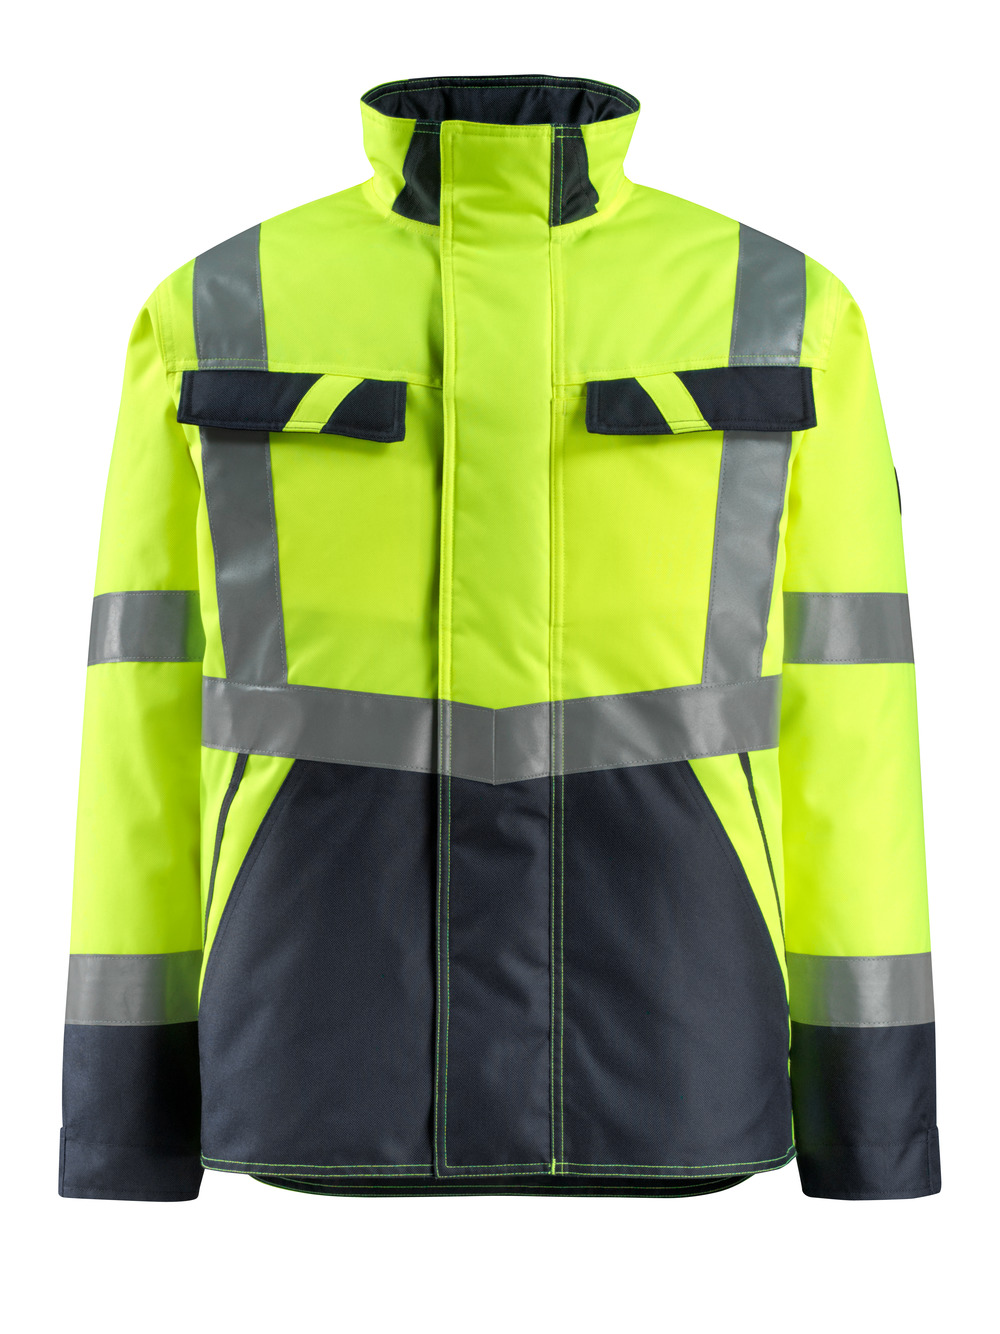 15935-126-17010 Winter Jacket - hi-vis yellow/dark navy